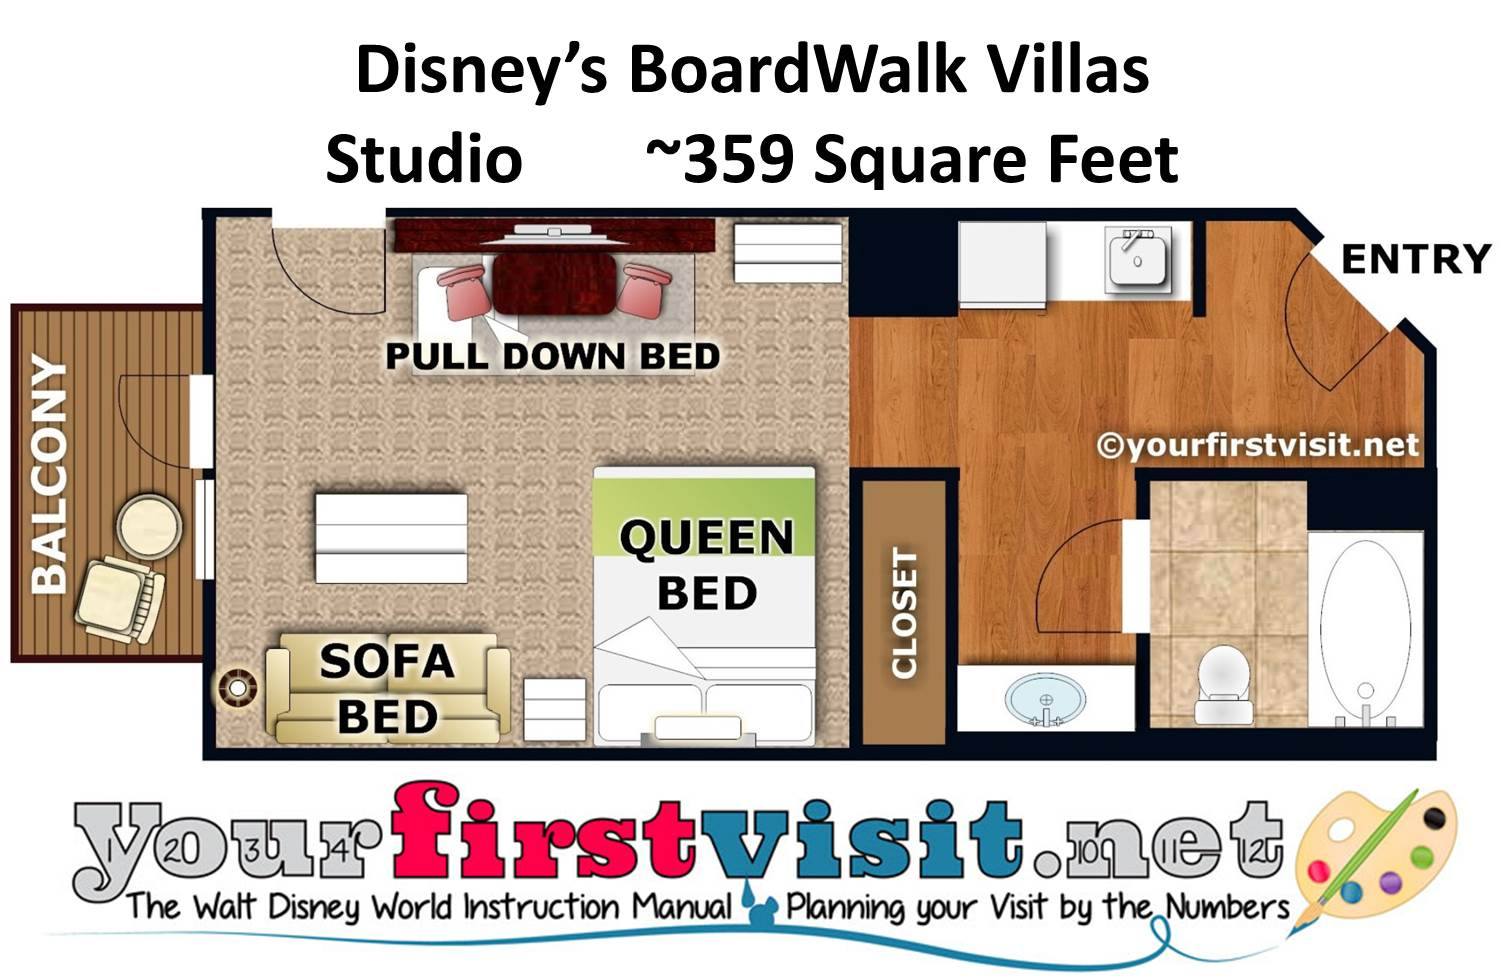 Photo Tour of a Studio at Disney\'s BoardWalk Villas - yourfirstvisit.net